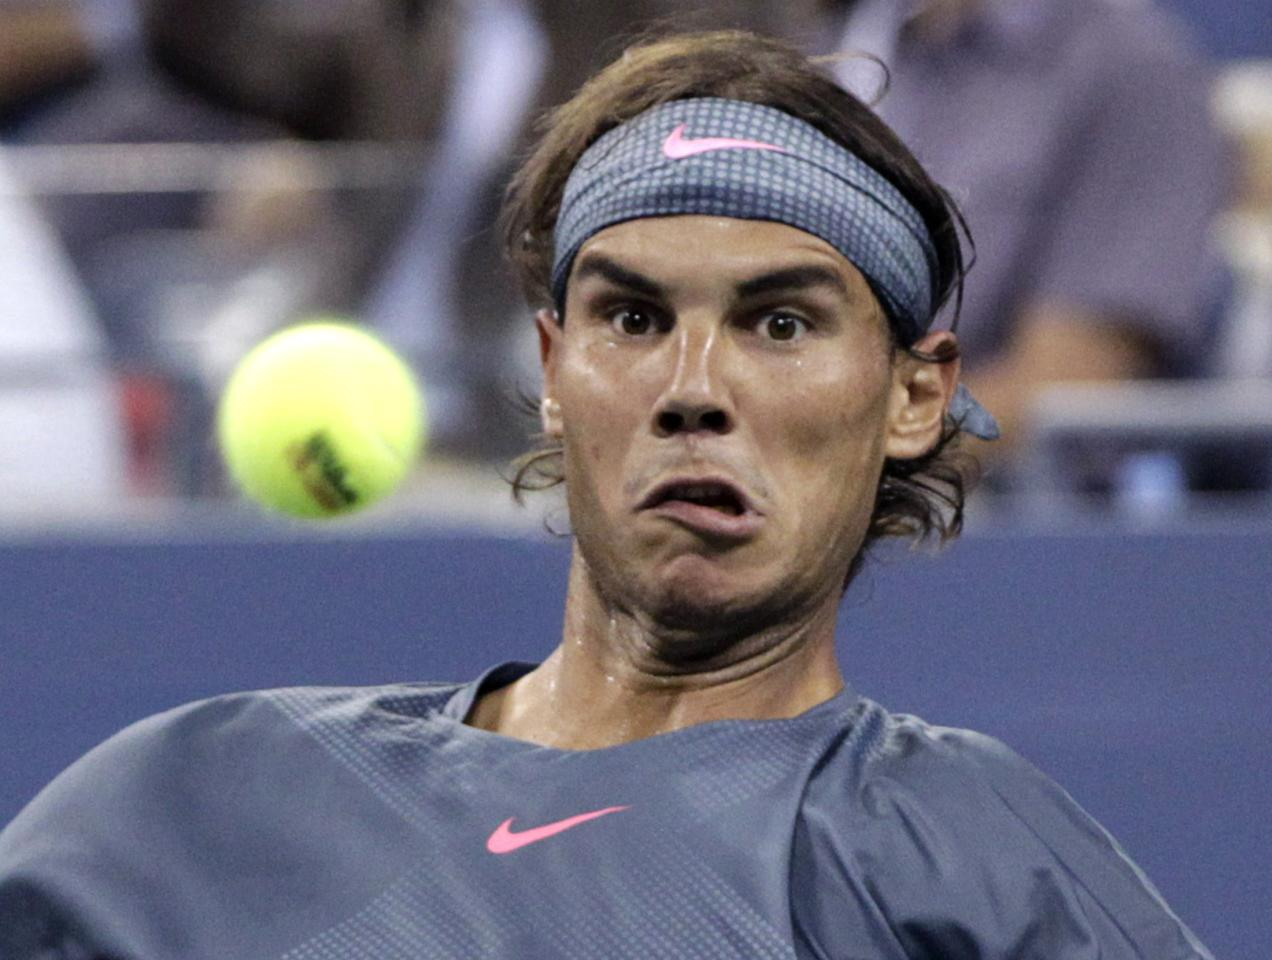 Rafael Nadal of Spain keeps his eyes on the ball as he plays Rogerio Dutra Silva of Brazil at the U.S. Open tennis championships in New York, August 29, 2013. REUTERS/Shannon Stapleton (UNITED STATES - Tags: SPORT TENNIS)